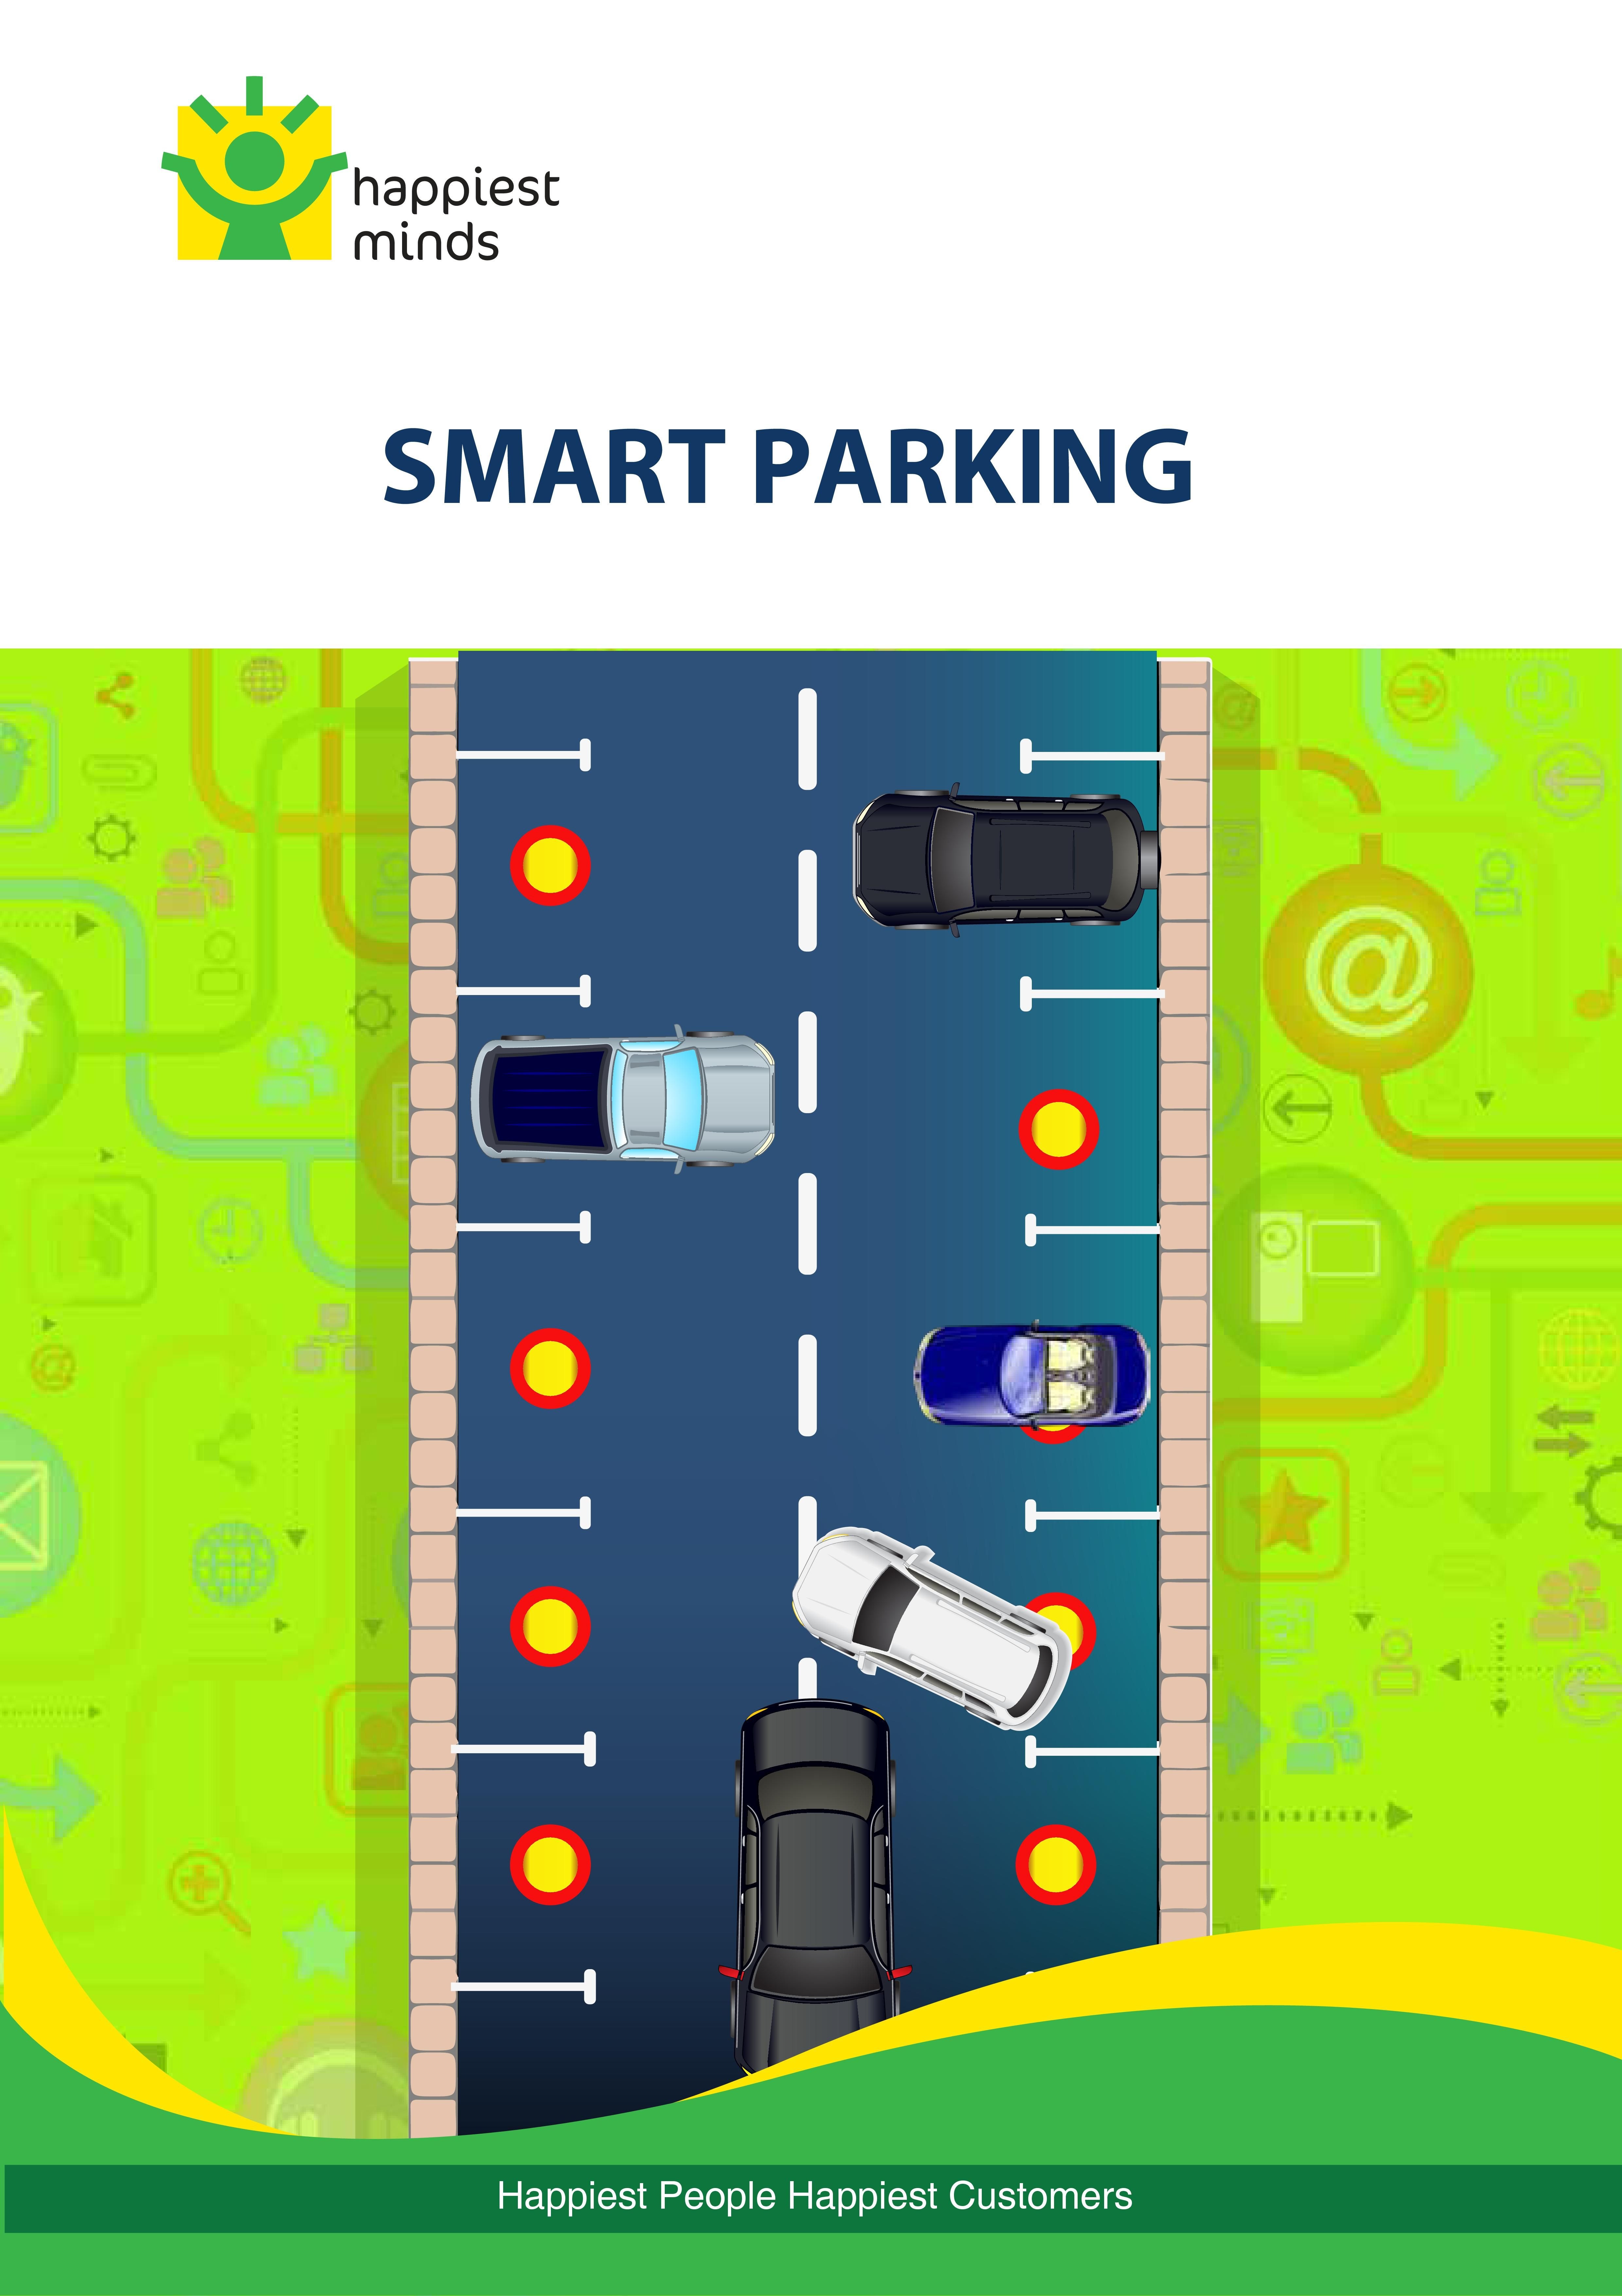 Smart Parking Systems Typically Obtains Information About Available Parking Spaces In A Particular Geographic Area And Happy Minds Happy People Data Collection